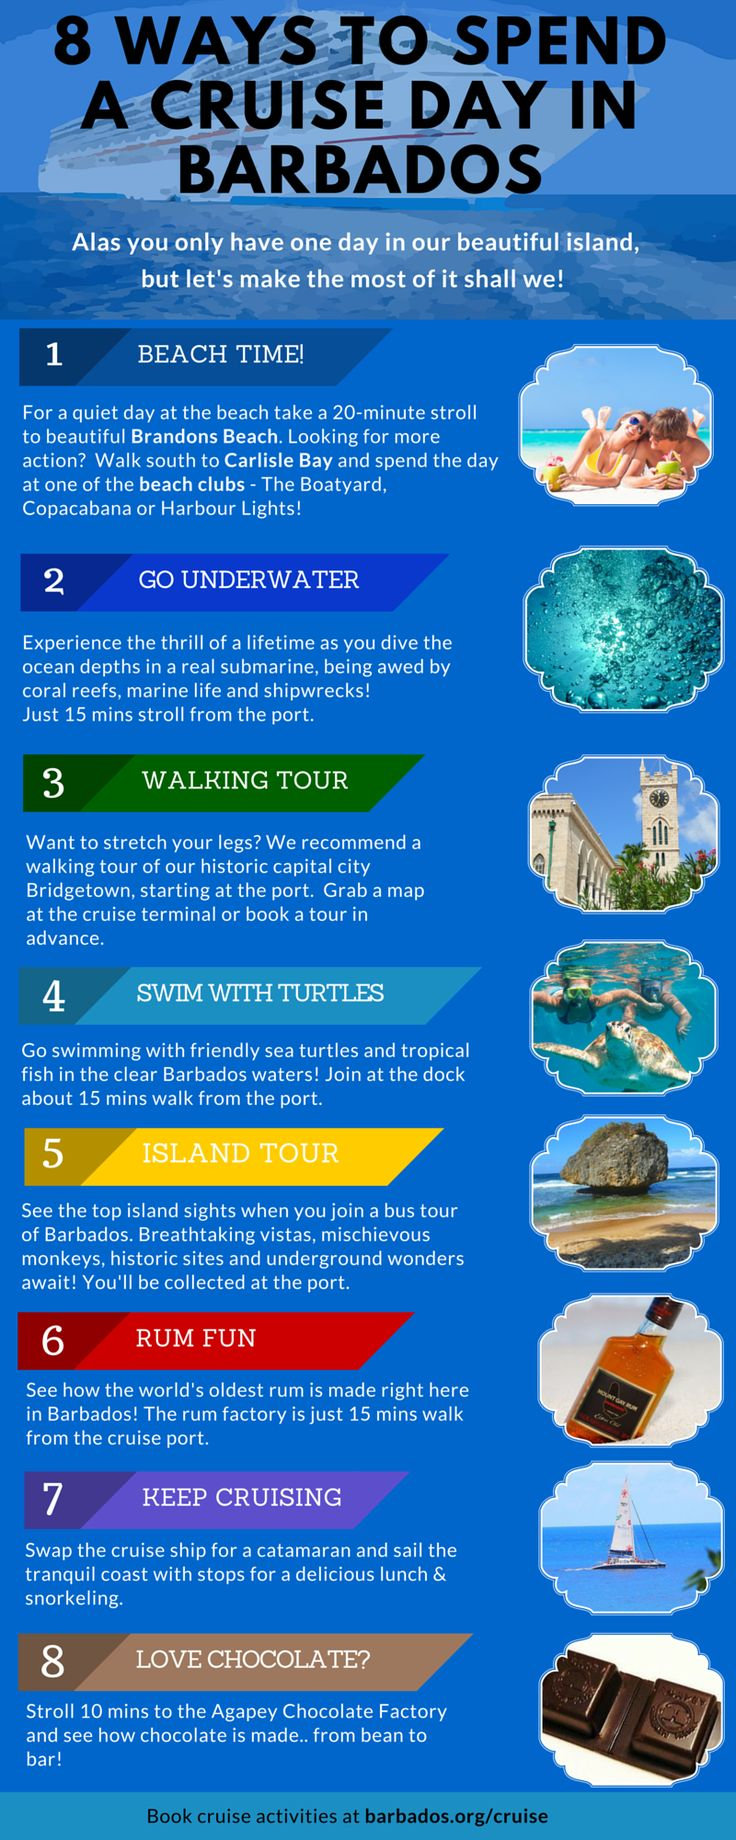 8 Great Ways To Spend A Cruise